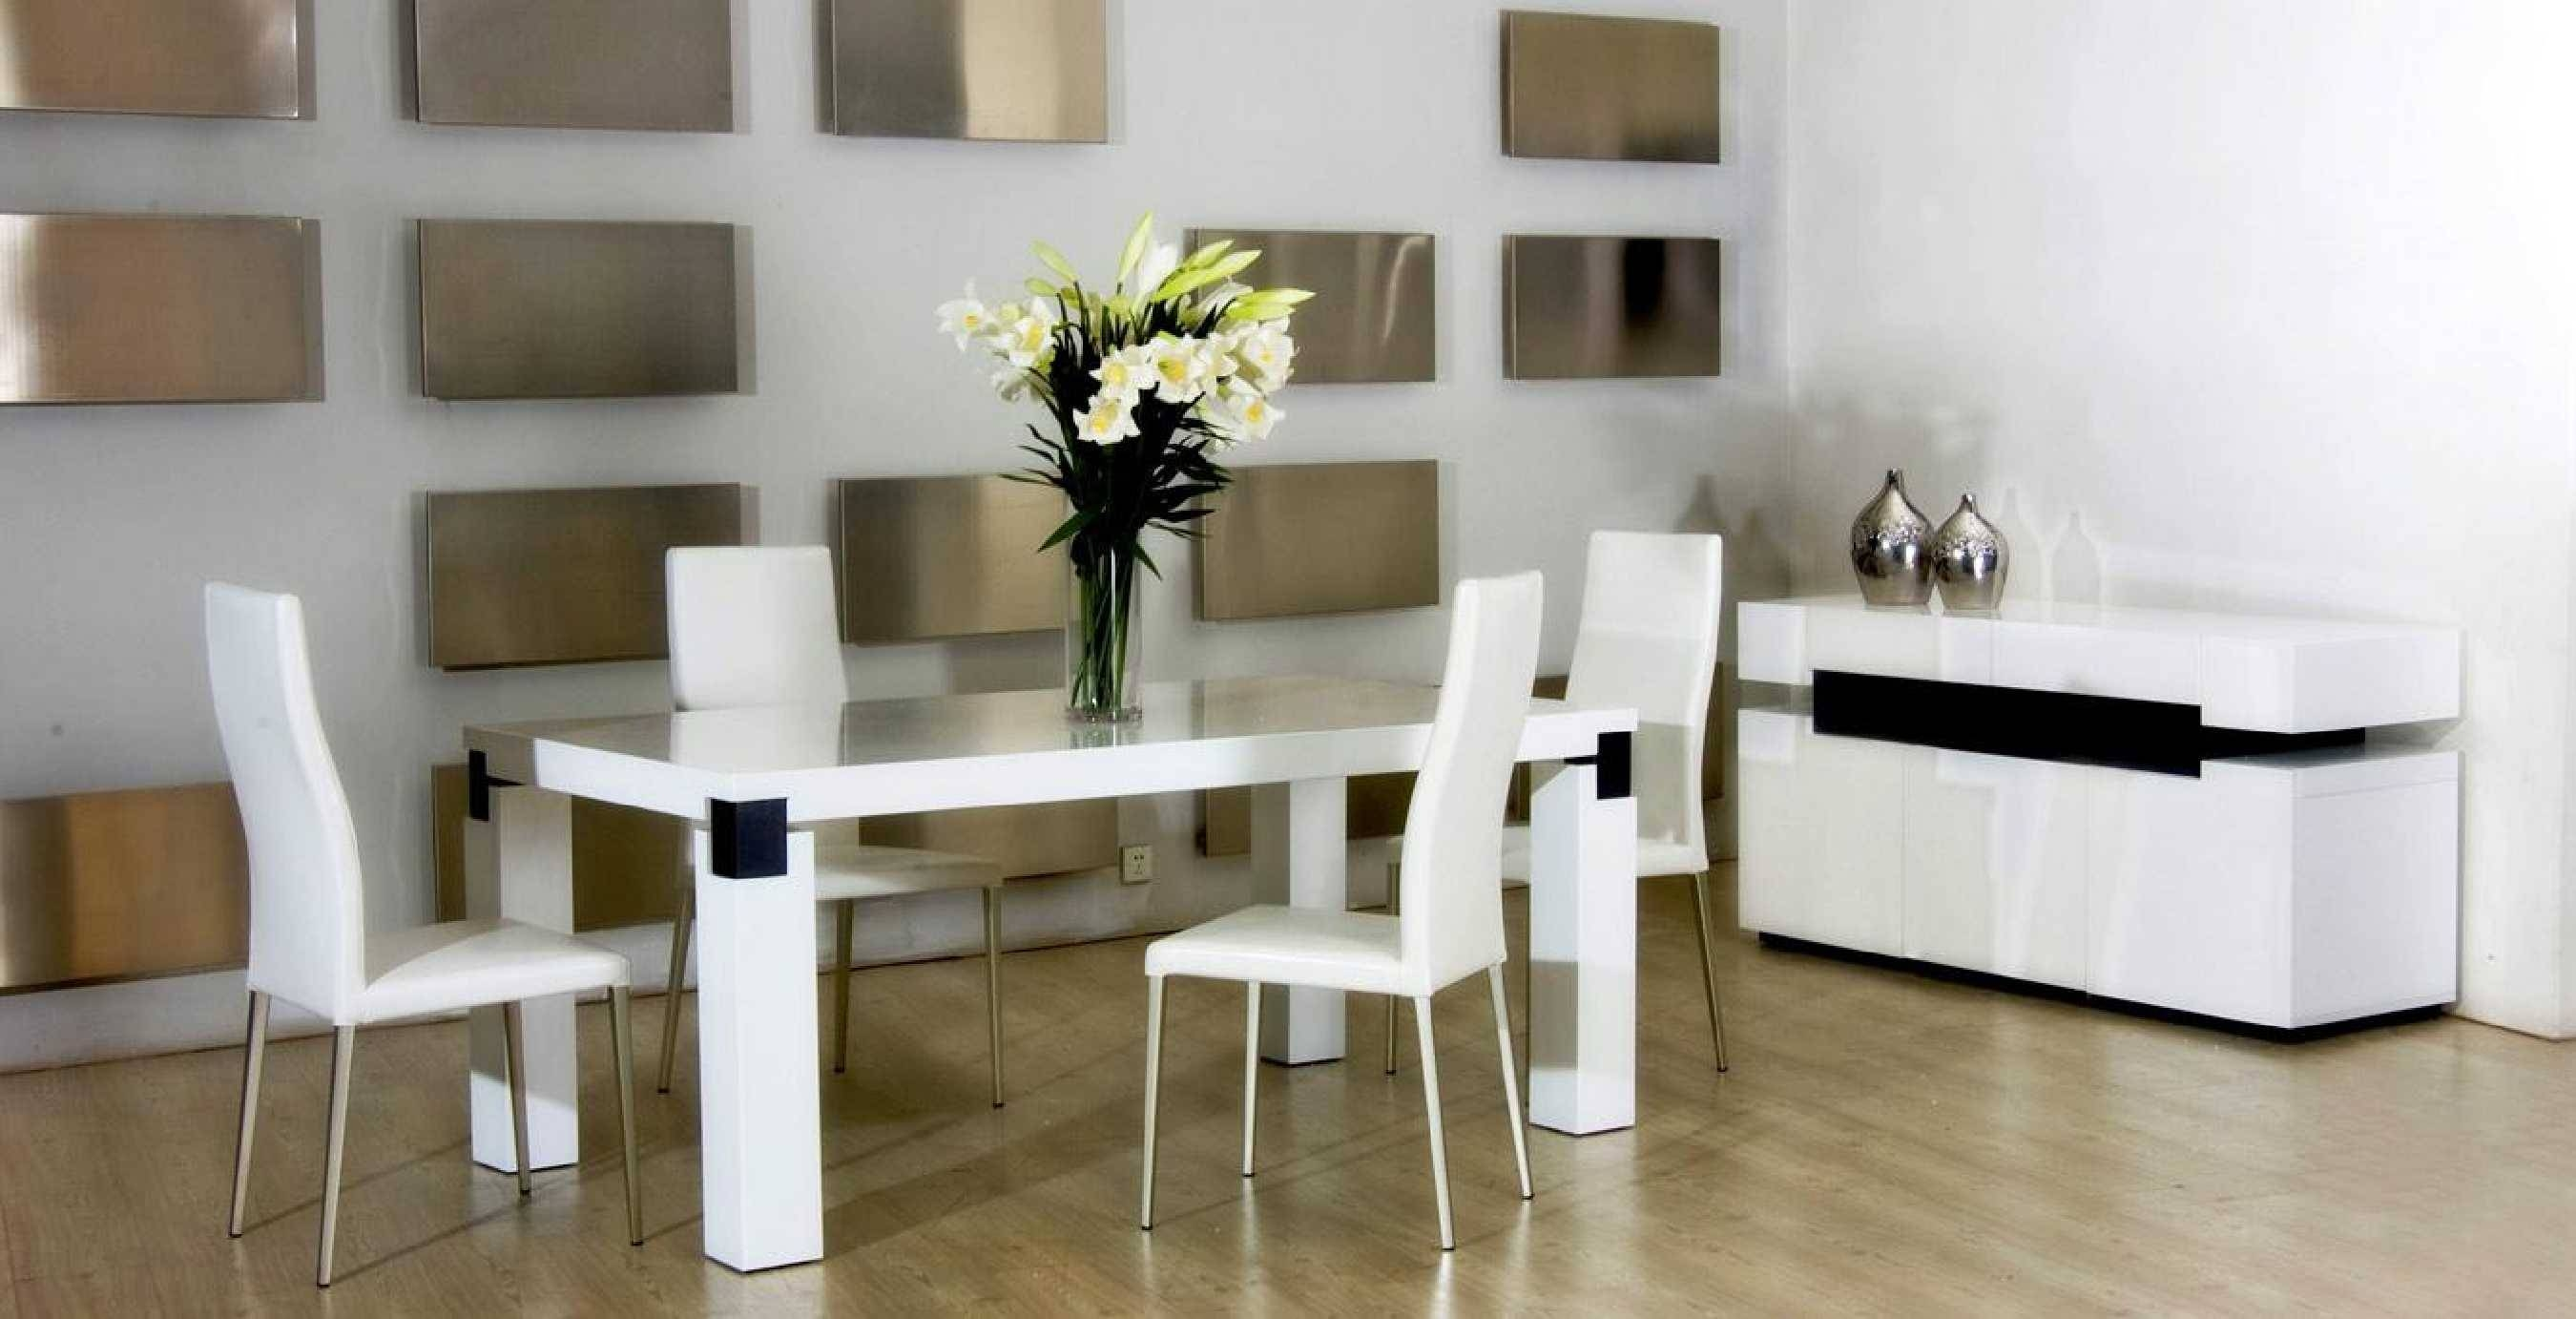 Alliancemv - Design Chairs And Dining Room Table regarding Dining Room Sets With Sideboards (Image 1 of 15)